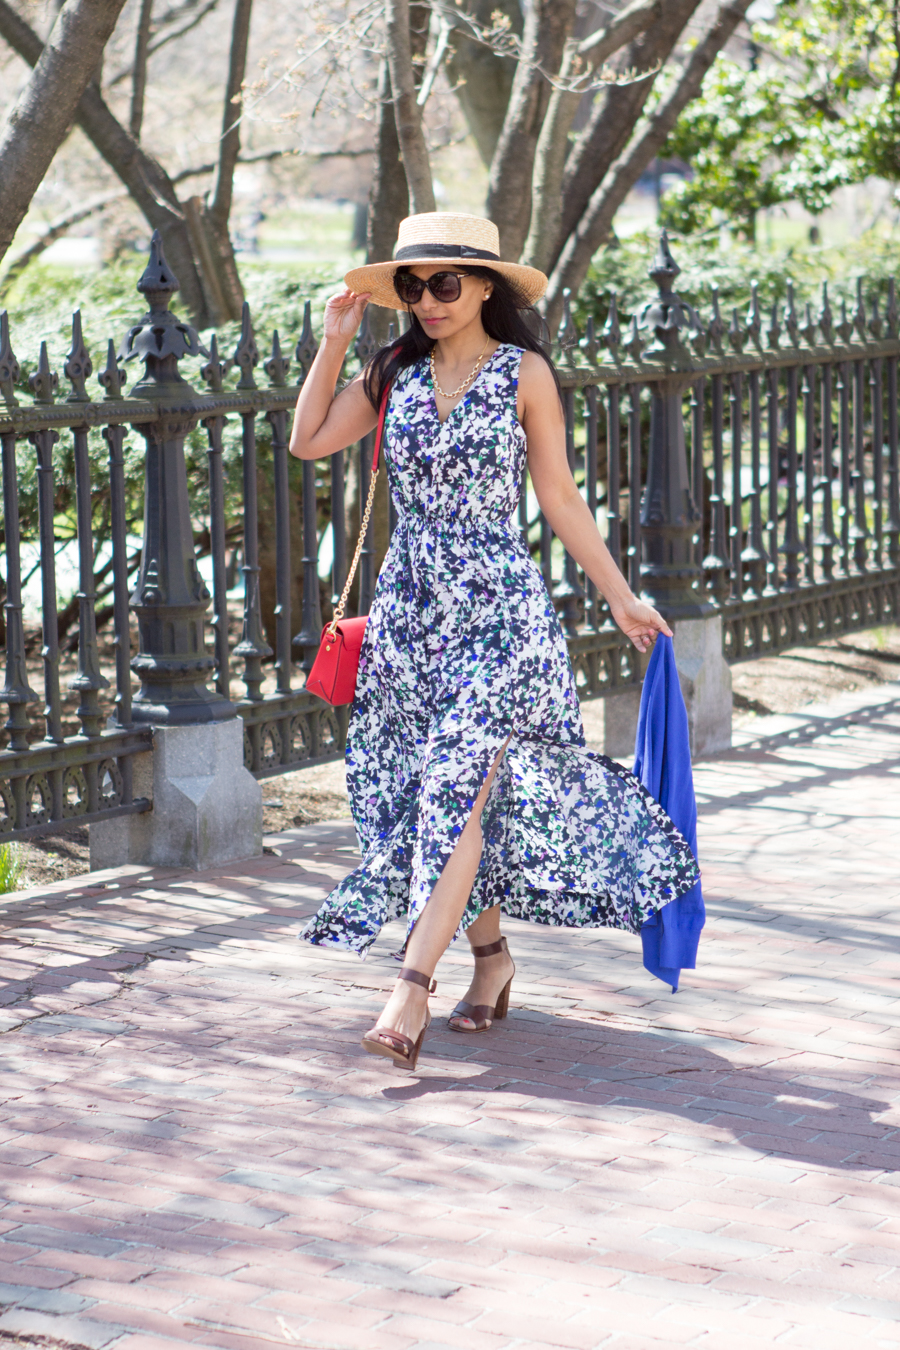 spring style, maxi dress, floral dress, floral maxi, cobalt blue, ann taylor, banana republic, jcrew, AEO, block heels, fashion blog, petite fashion, petite maxi, petite dresses, mommy style, mommy fashion, mom chic, mom glam, boater hat, straw hat, boston commons, spring lookbook, weekend style, garden party, indian blogger